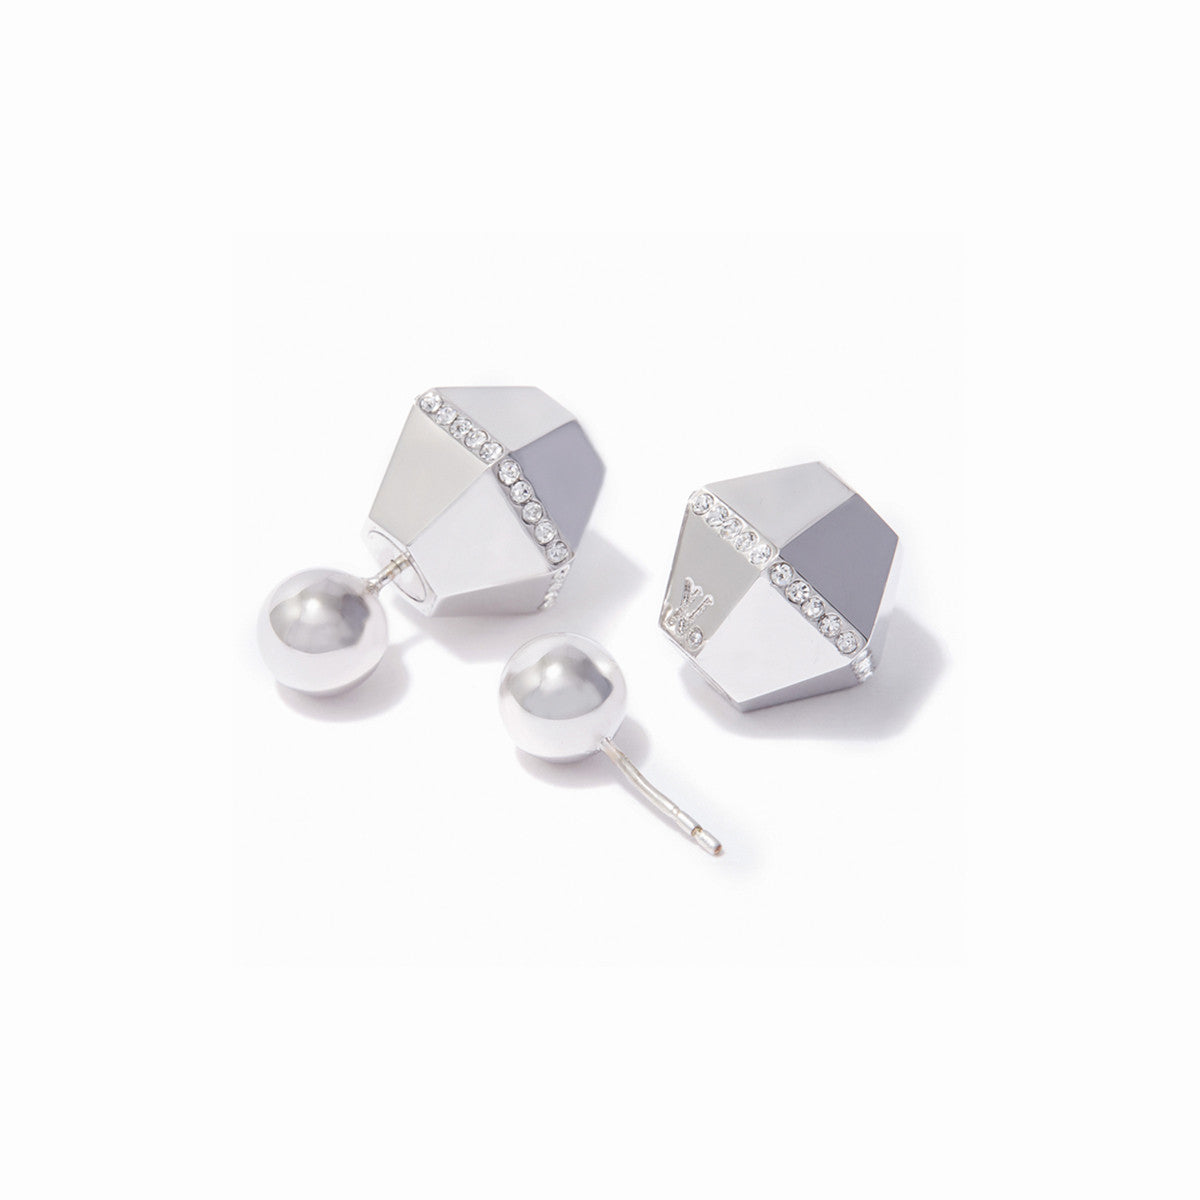 Sixtine Reversible Earrings - Rhodium